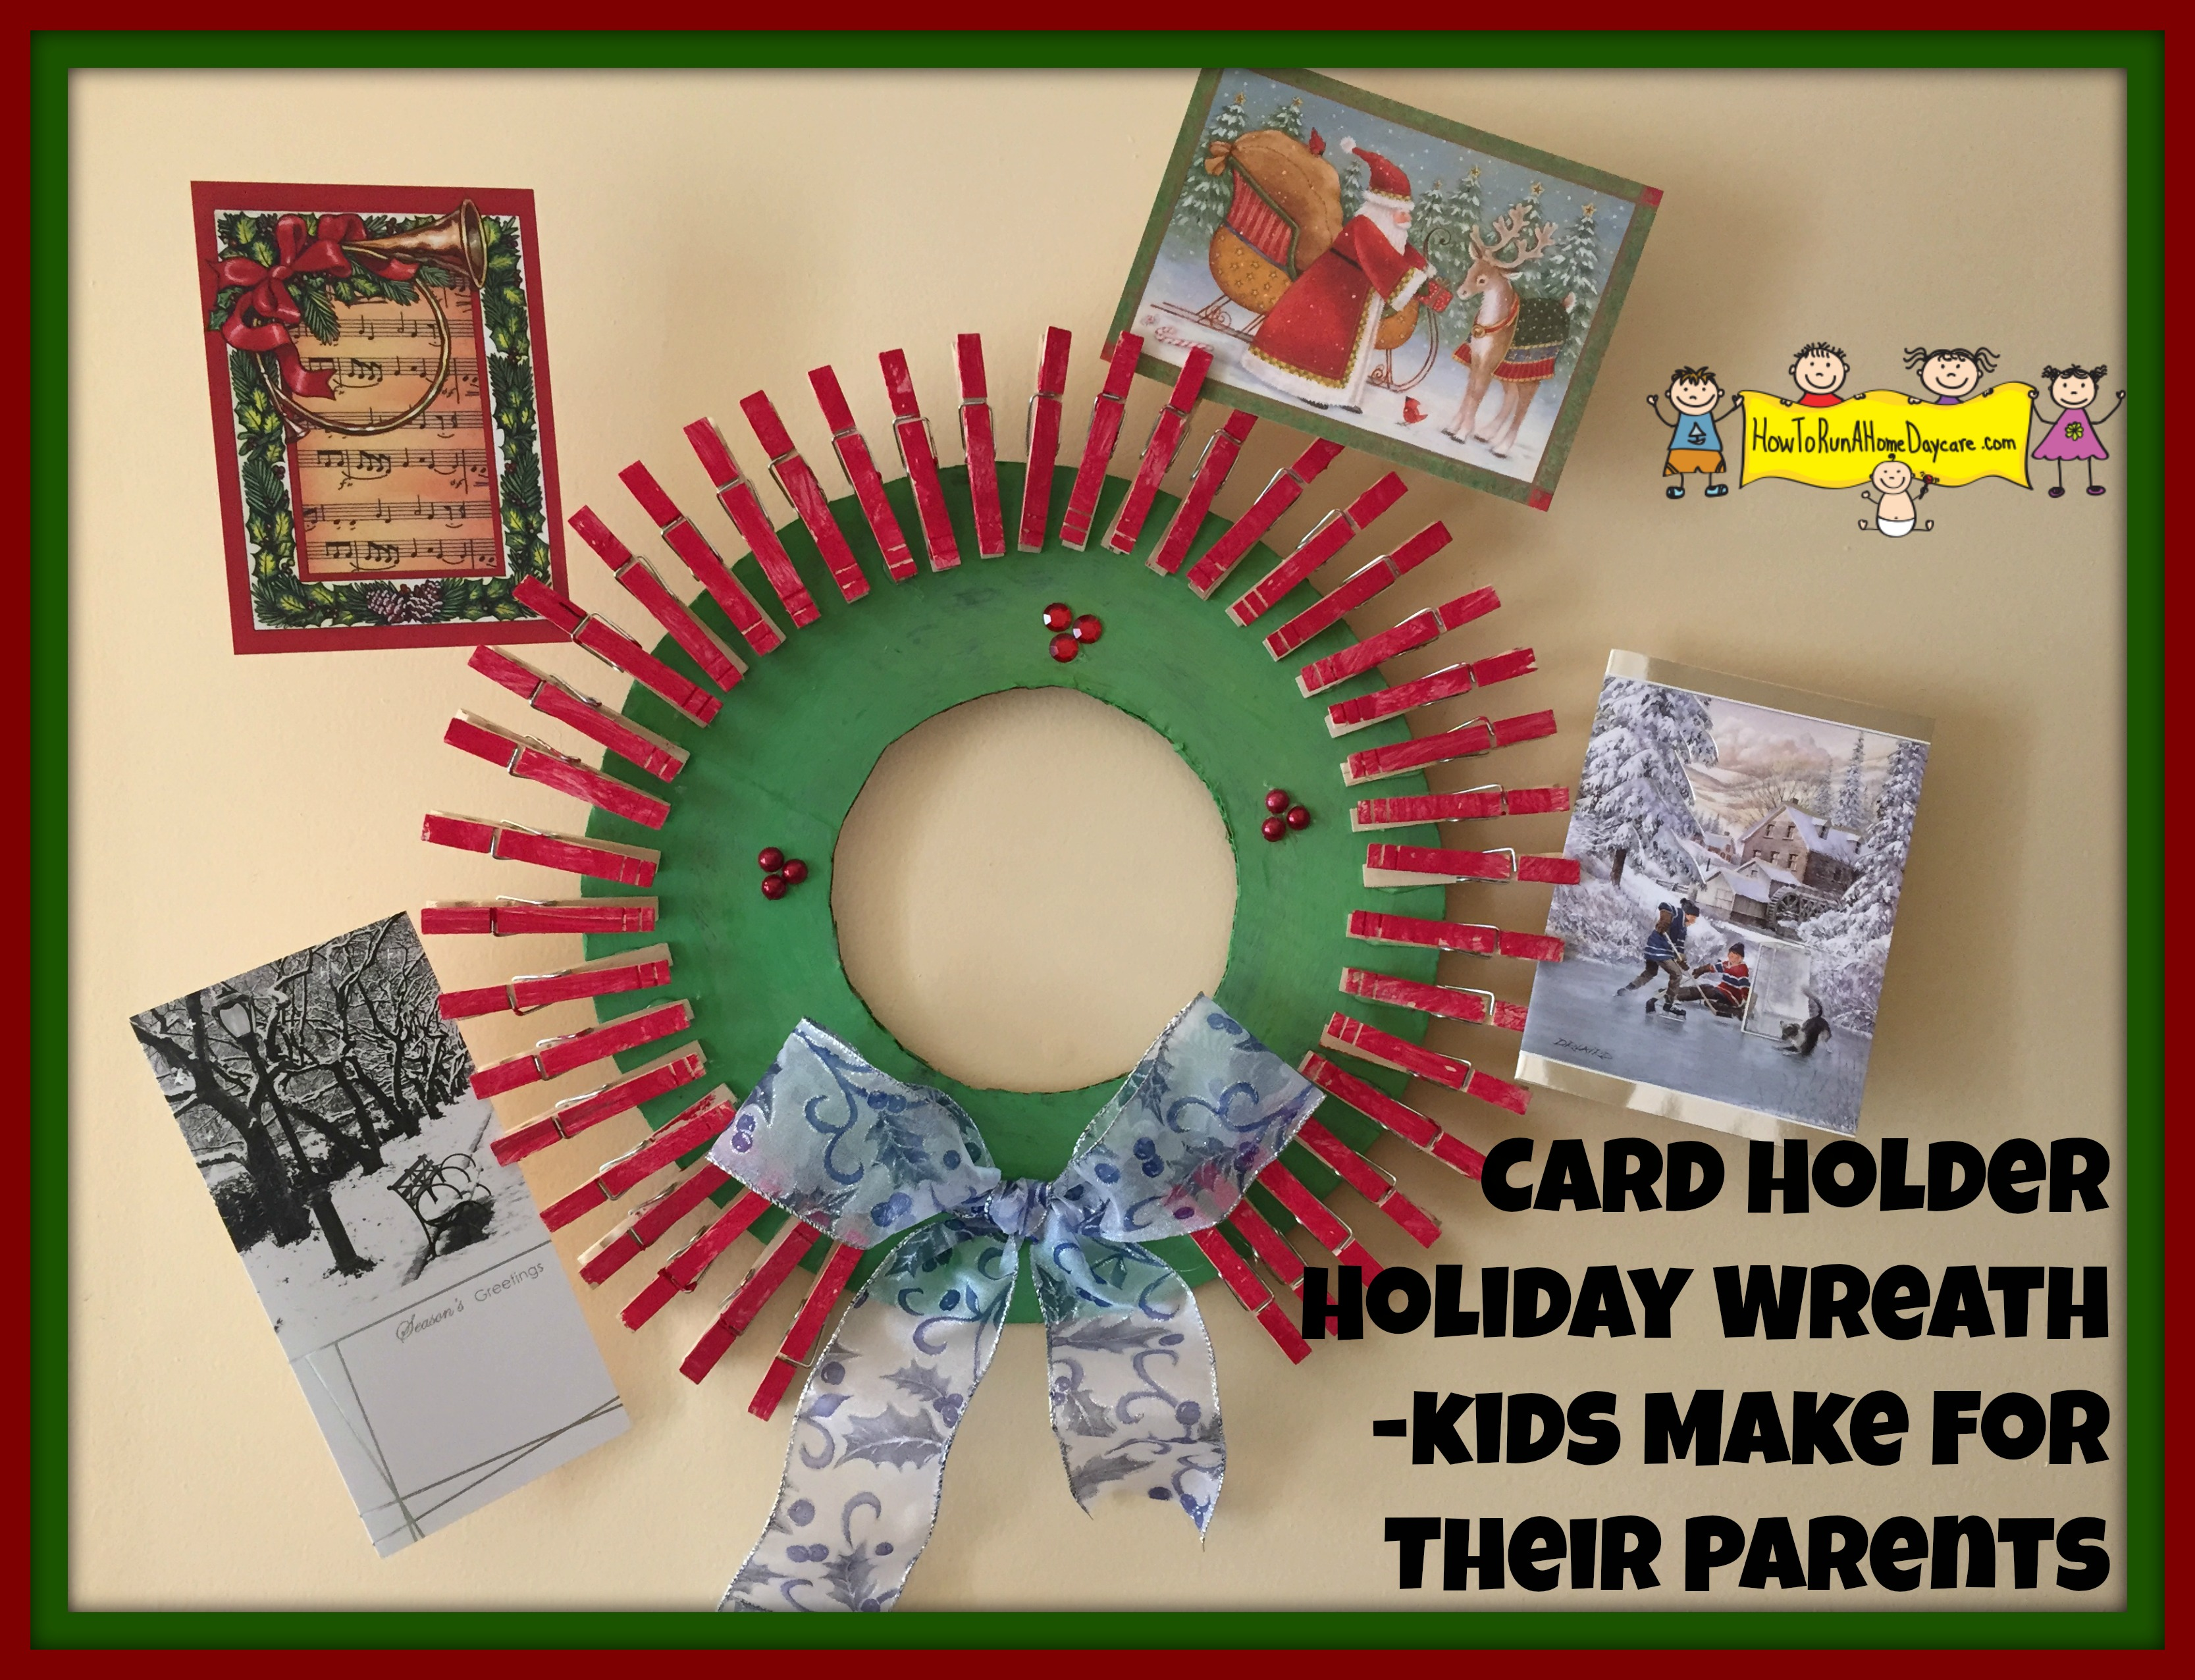 Christmas Gift Ideas For Parents From Preschoolers.Card Holder Holiday Wreath Kids Make For Their Parents